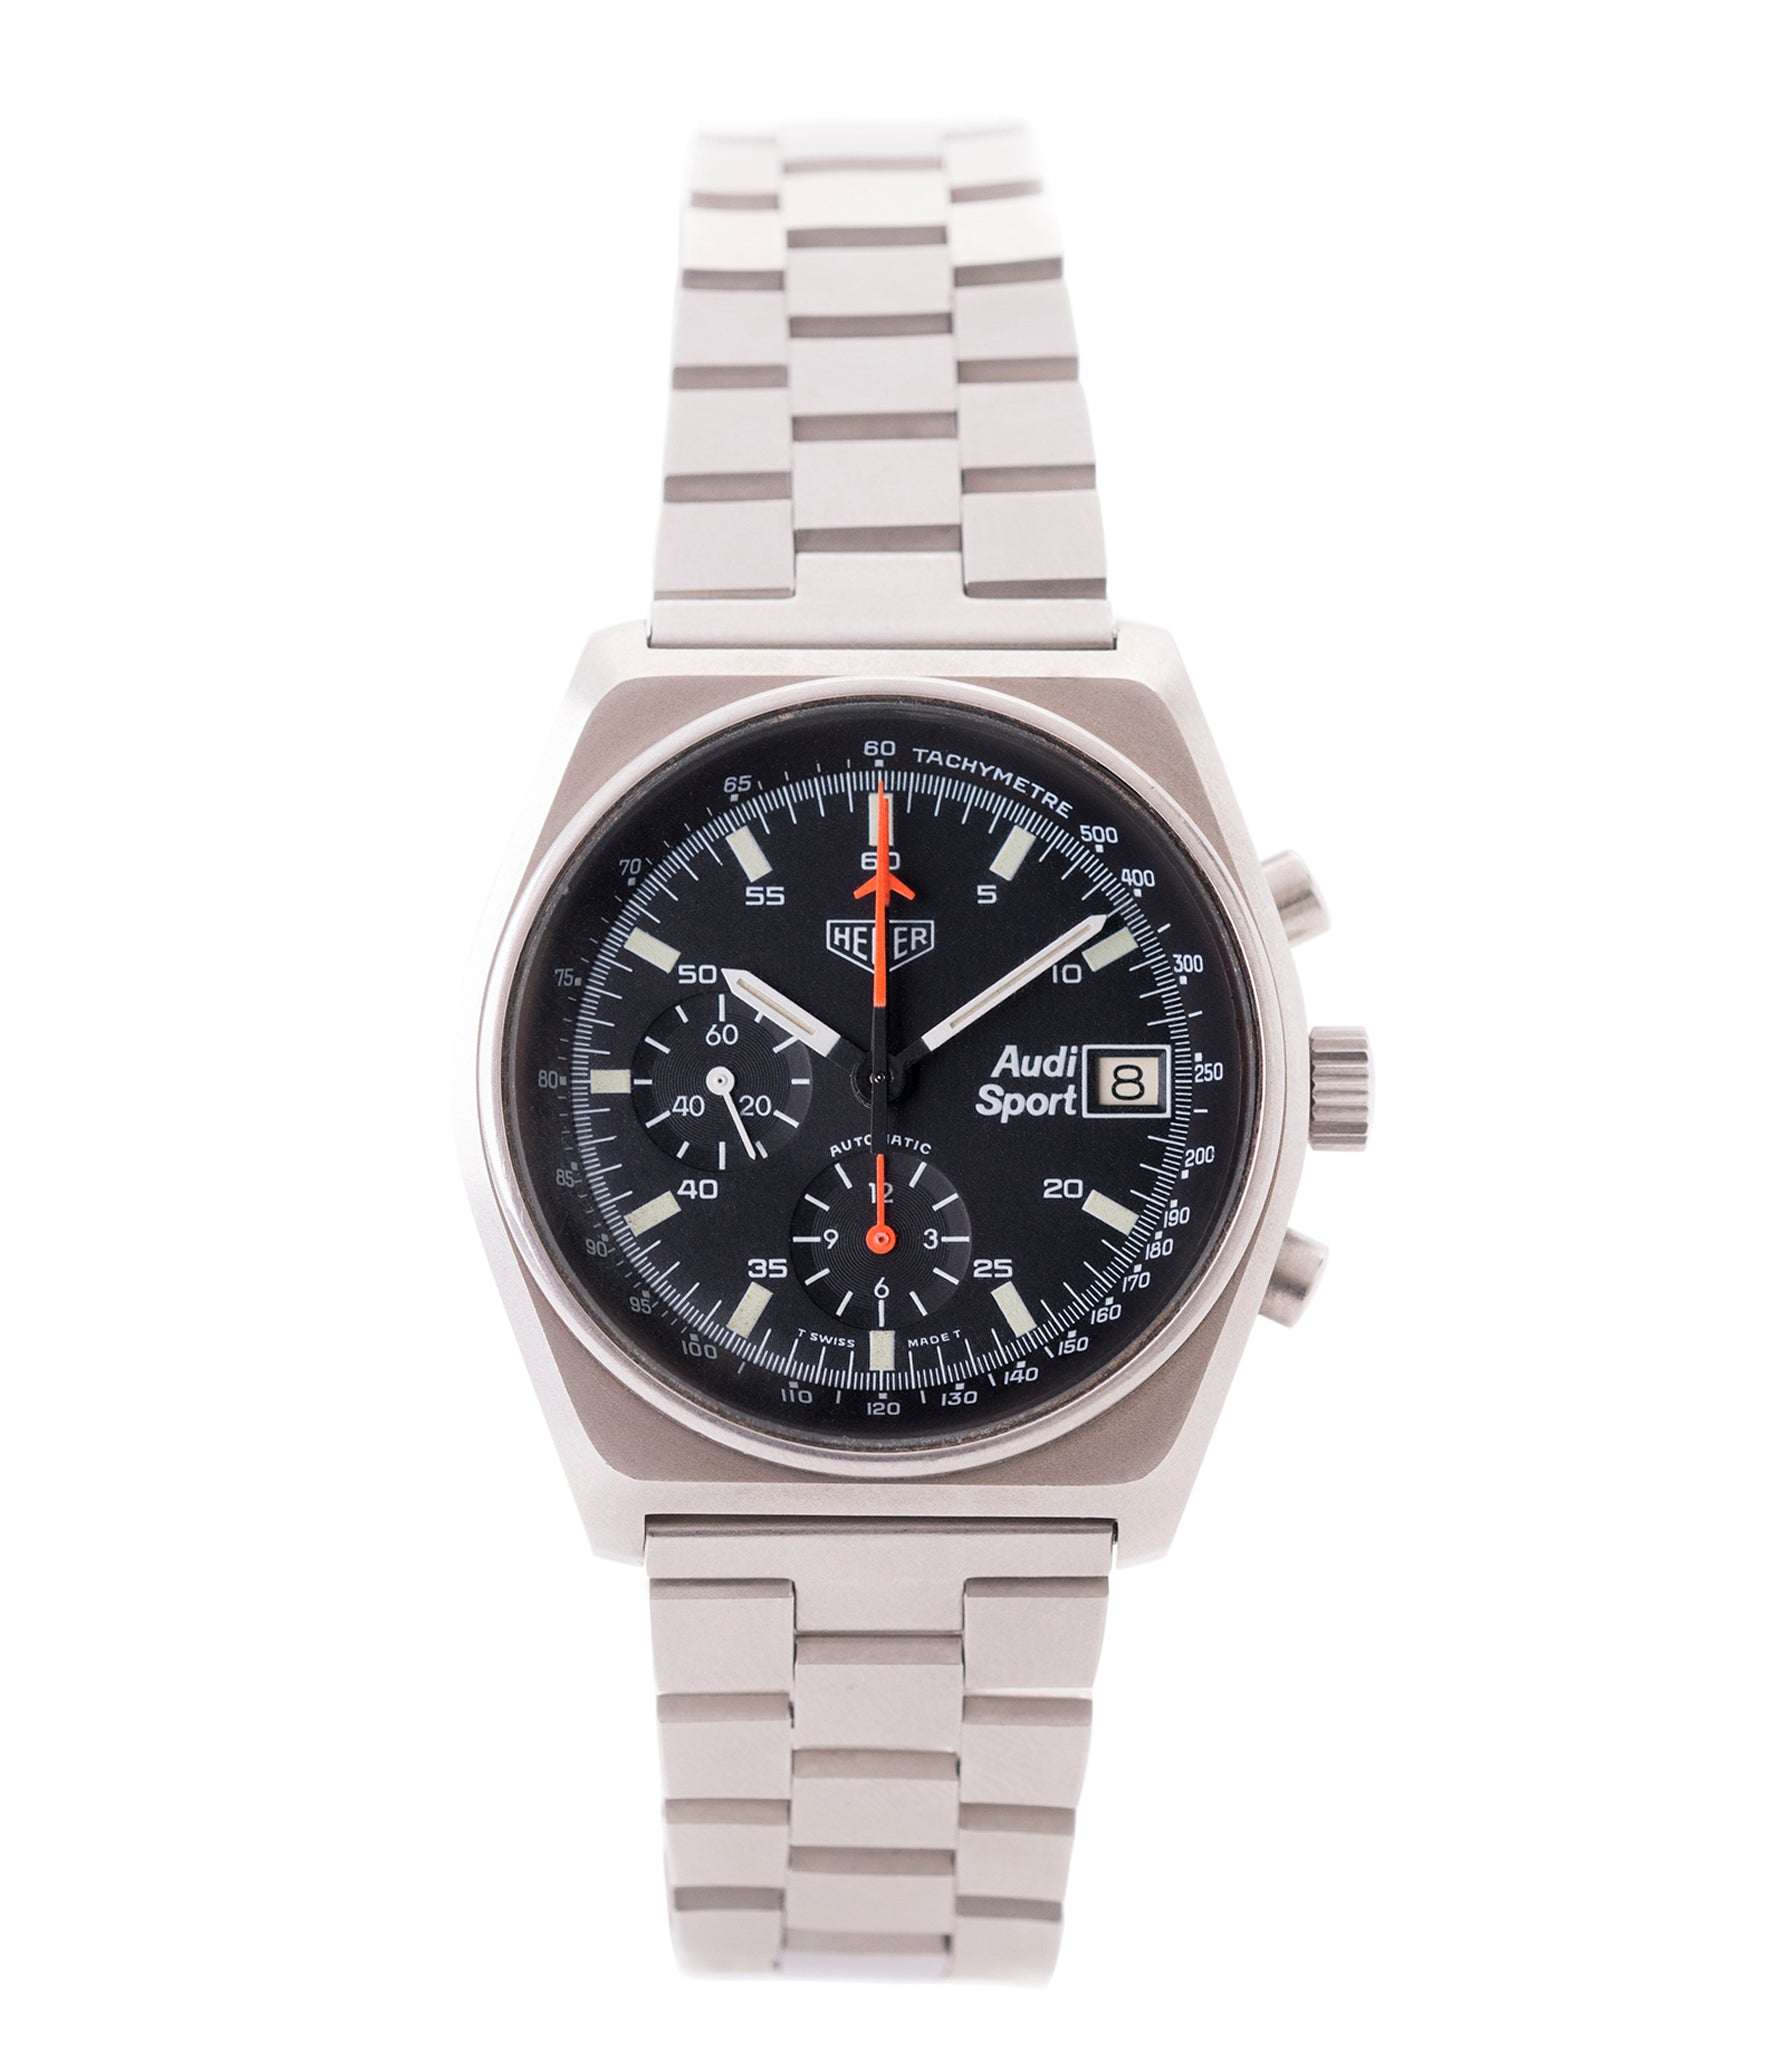 buy Heuer Sport Audi 510.533 vintage steel chronograph watch for sale online at A Collected Man London UK specialist of rare vintage watches